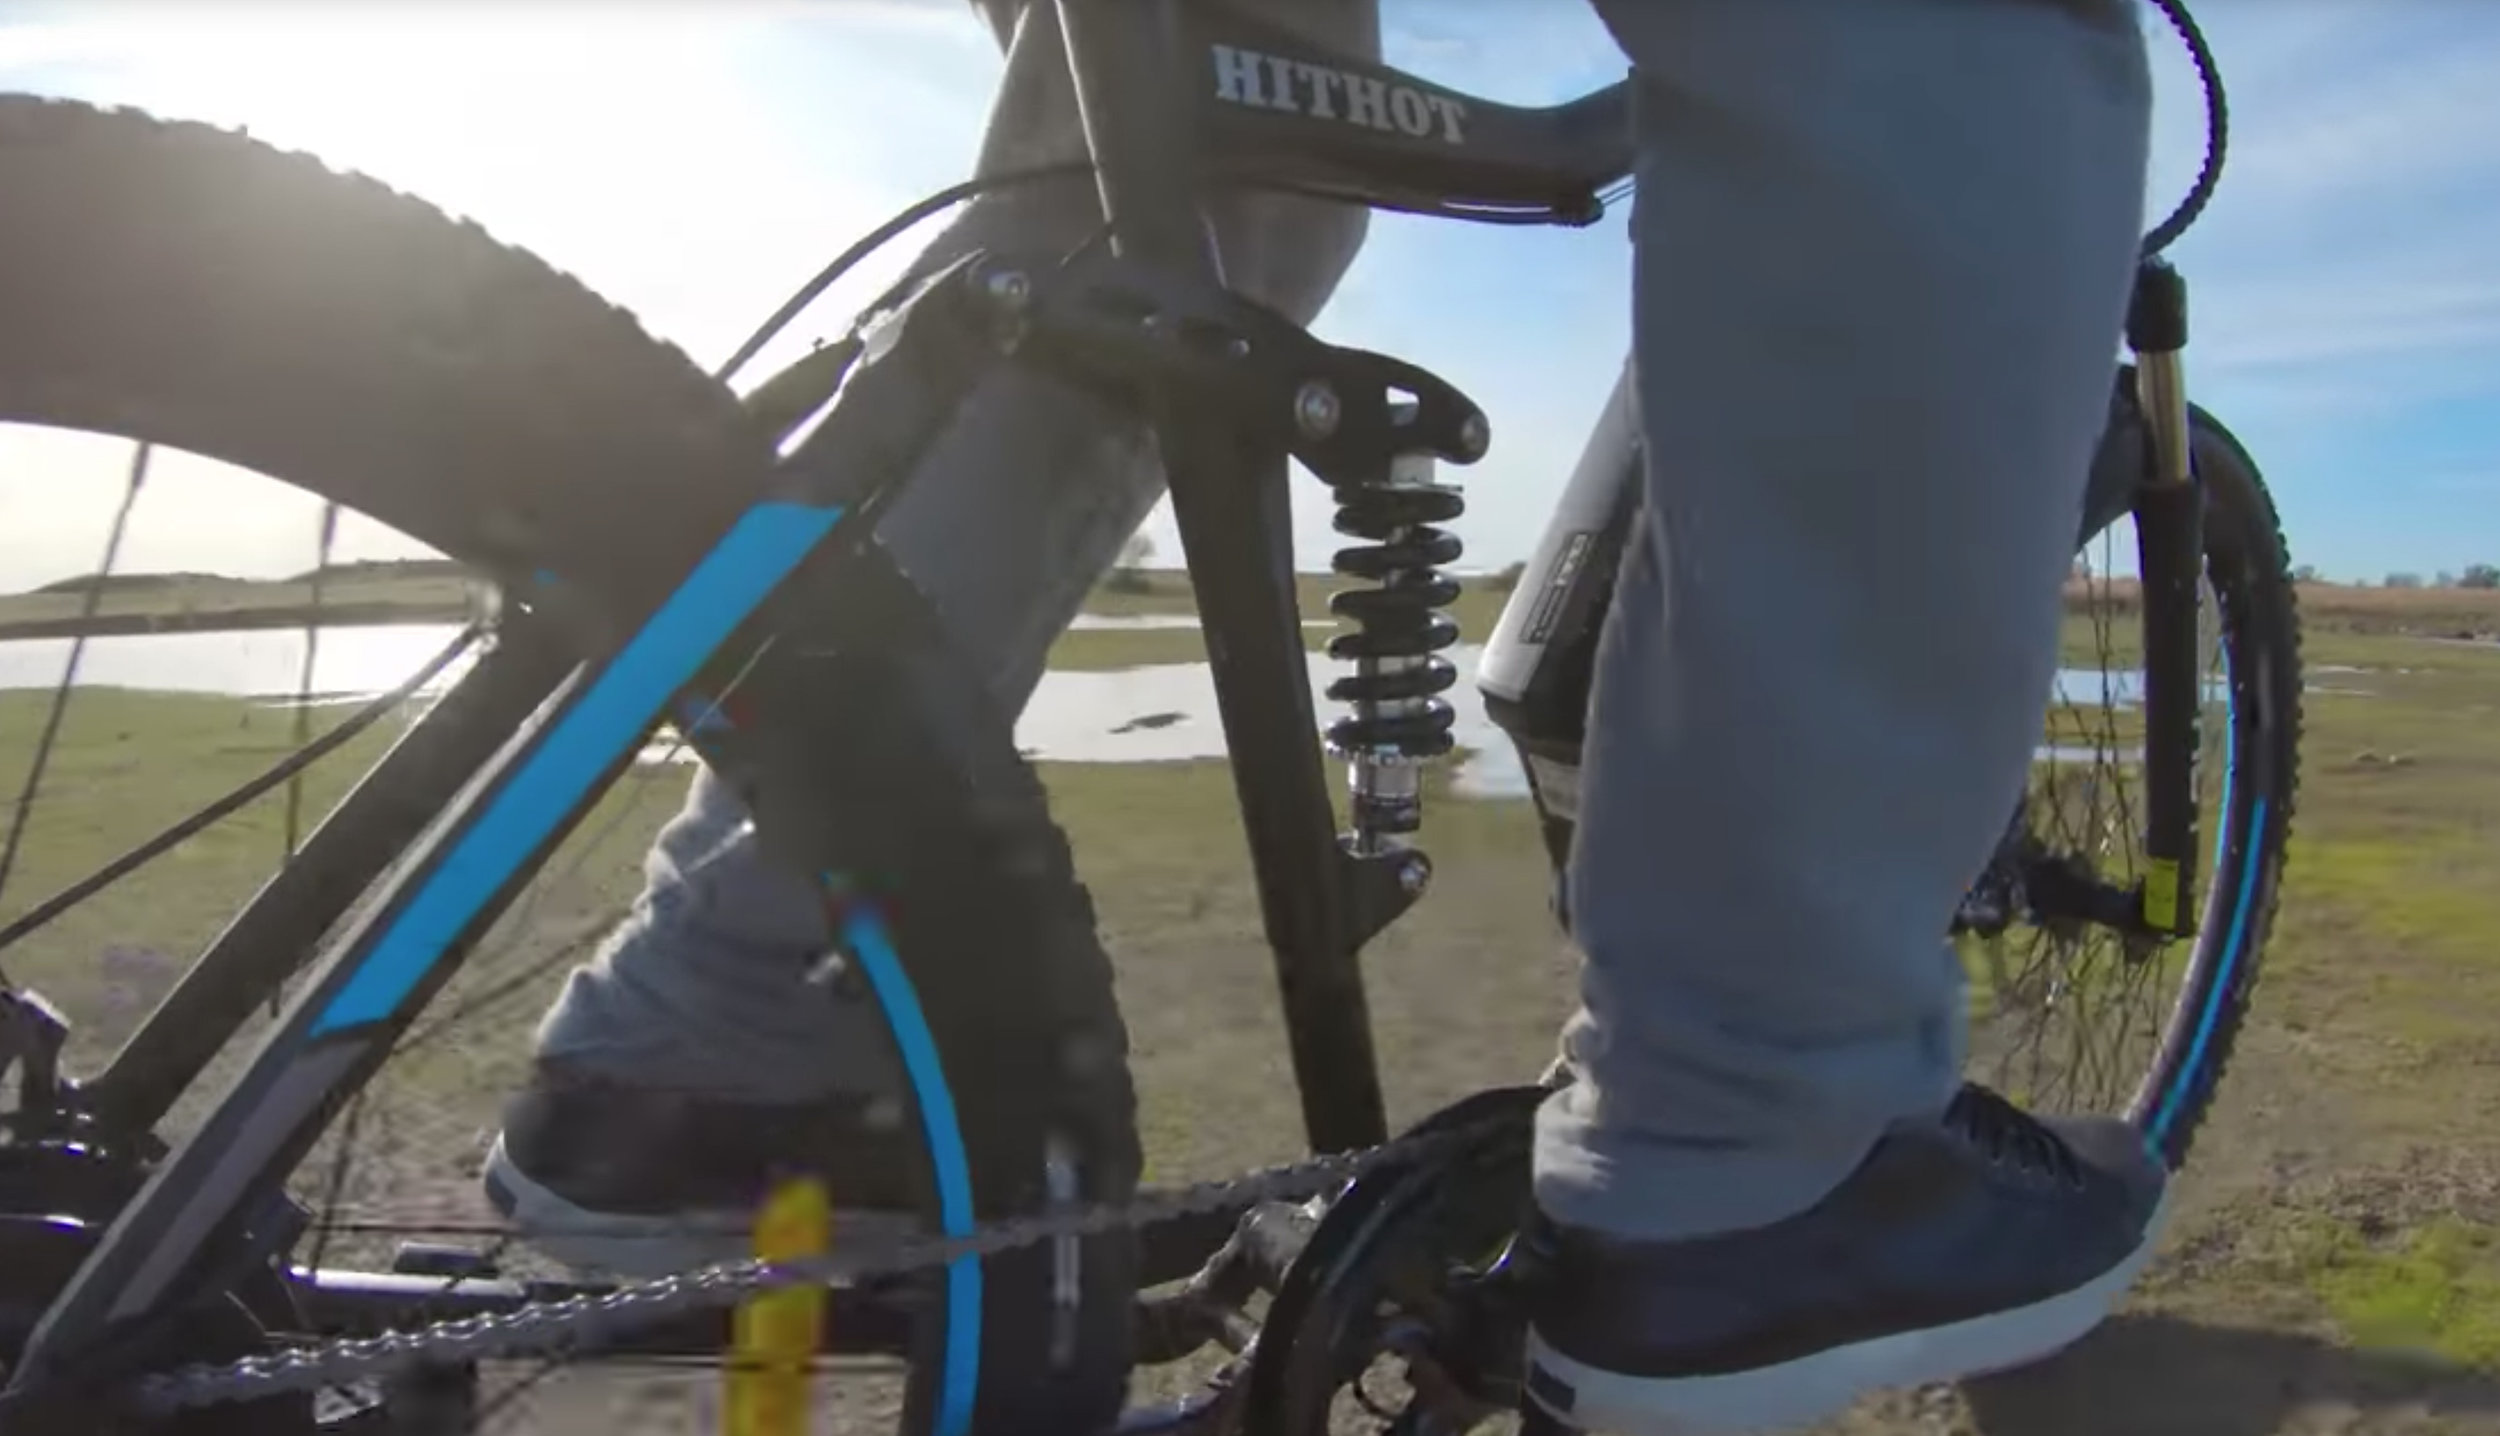 electrified-reviews-addmotor-hithot-h1-electric-bike-review-rear-suspension.jpg